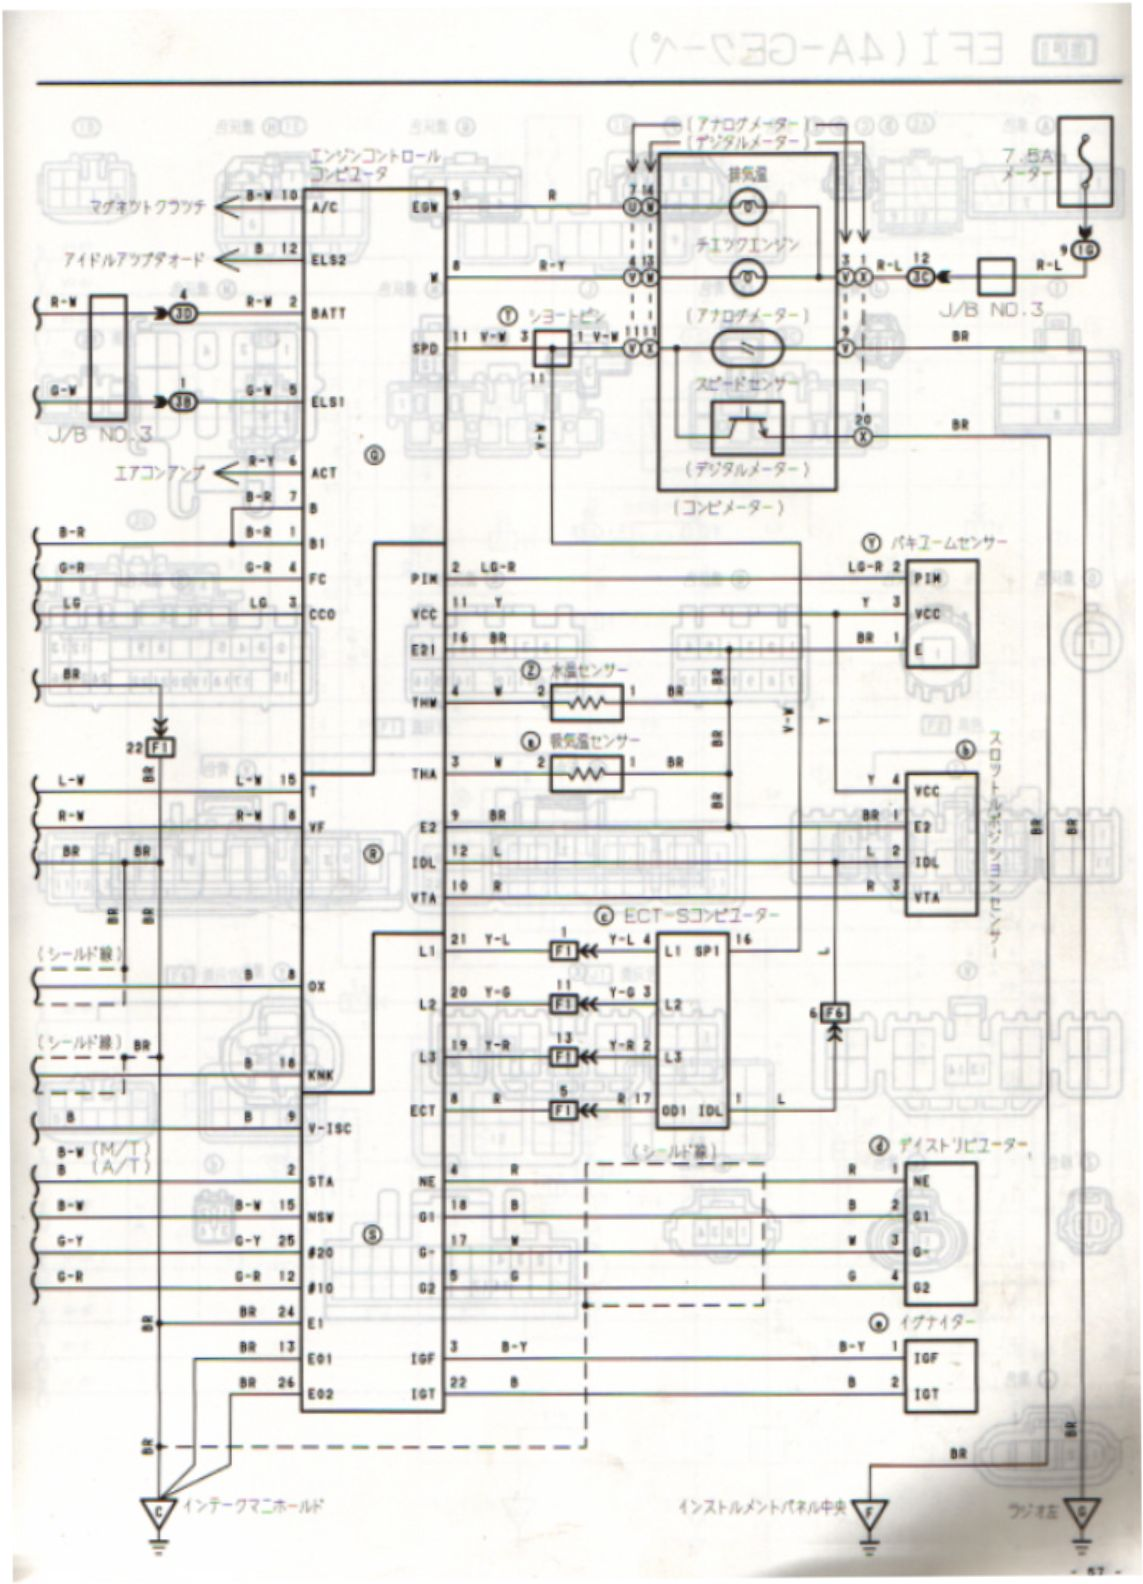 ae86 wiring diagram dc2 wiring diagram \u2022 wiring diagrams j 2005 corolla wiring diagram at webbmarketing.co